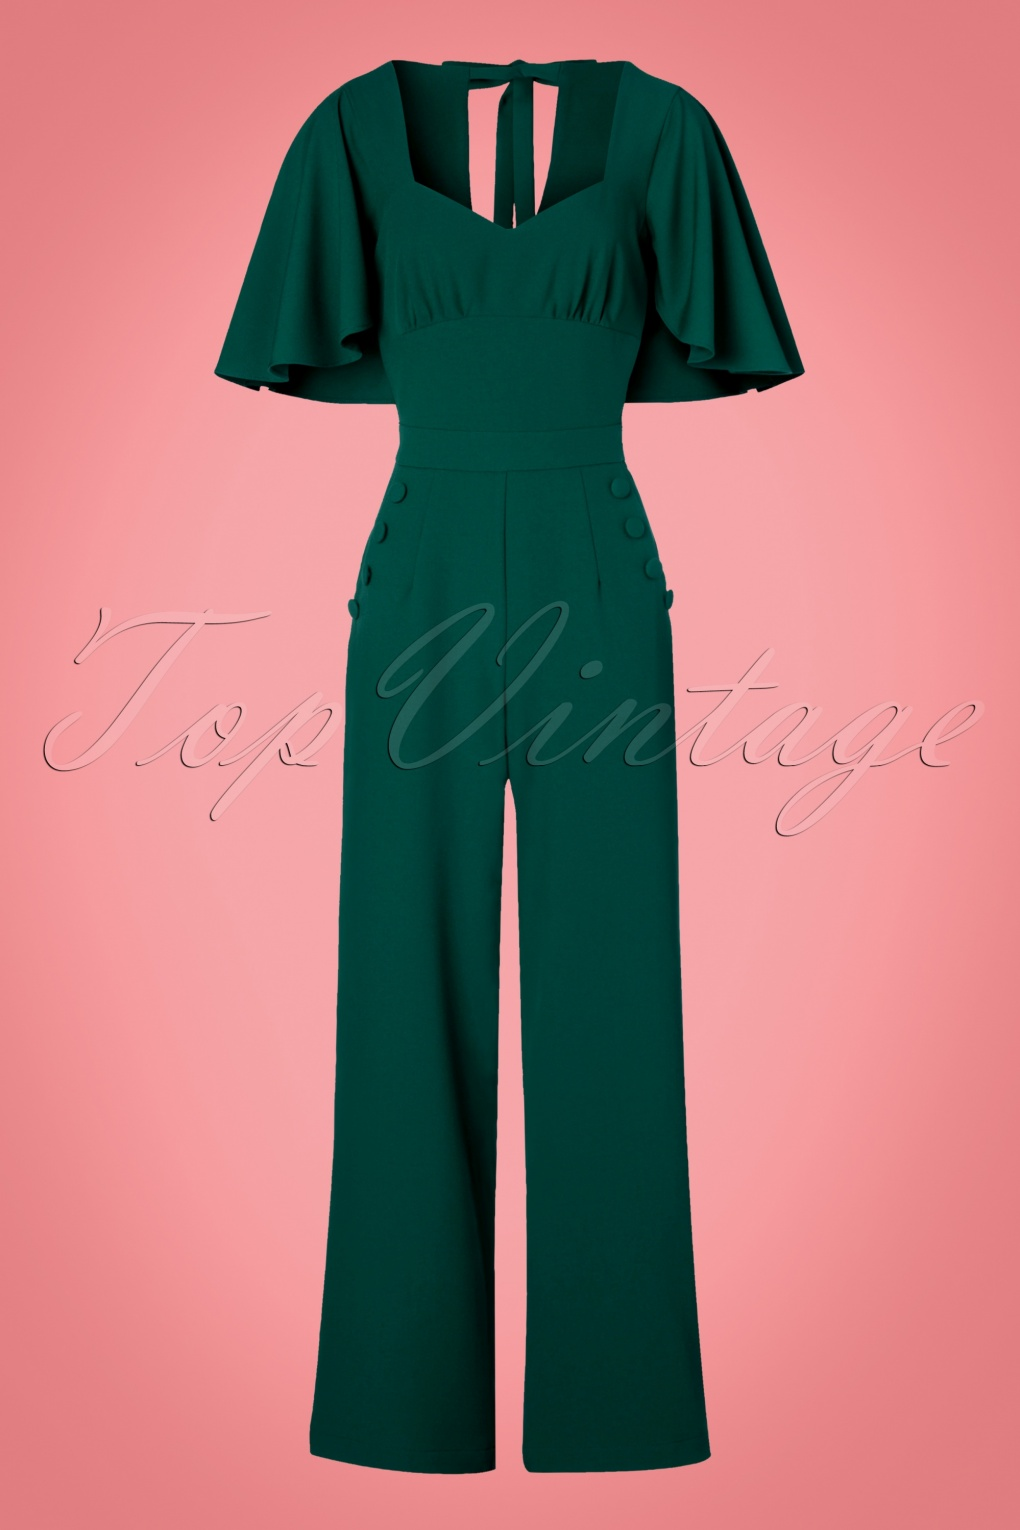 Vintage Overalls 1910s -1950s Pictures and History 40s Esmeralda Cape Jumpsuit in Teal Green £66.70 AT vintagedancer.com